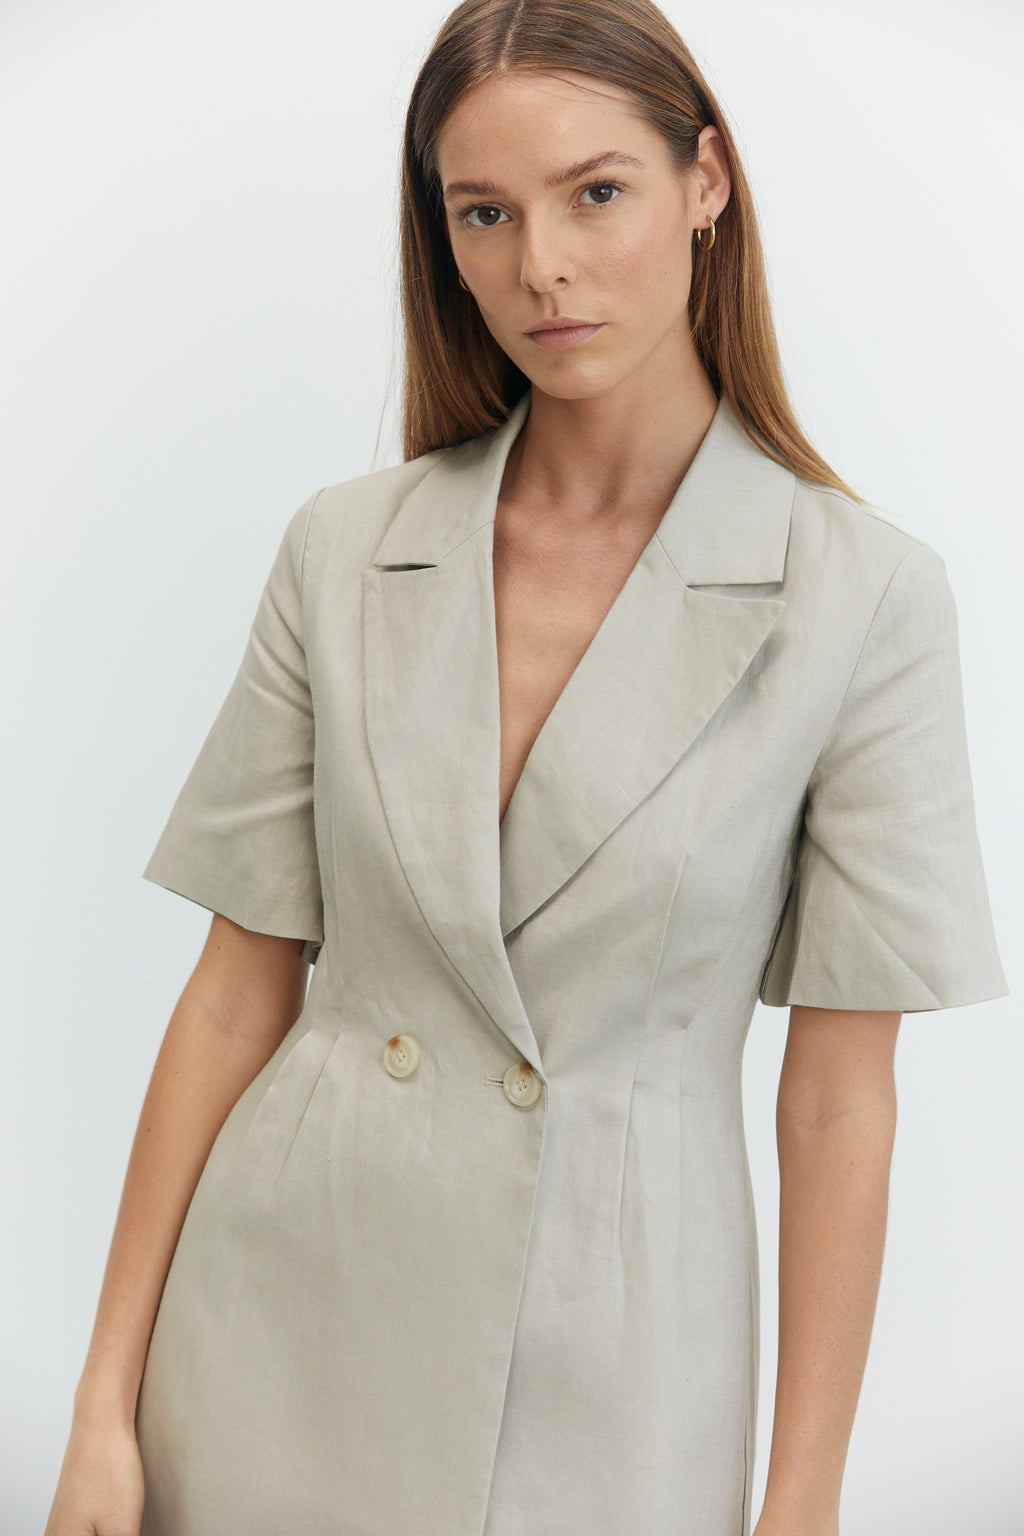 Third Form Tucked In Blazer Dress - Pebble